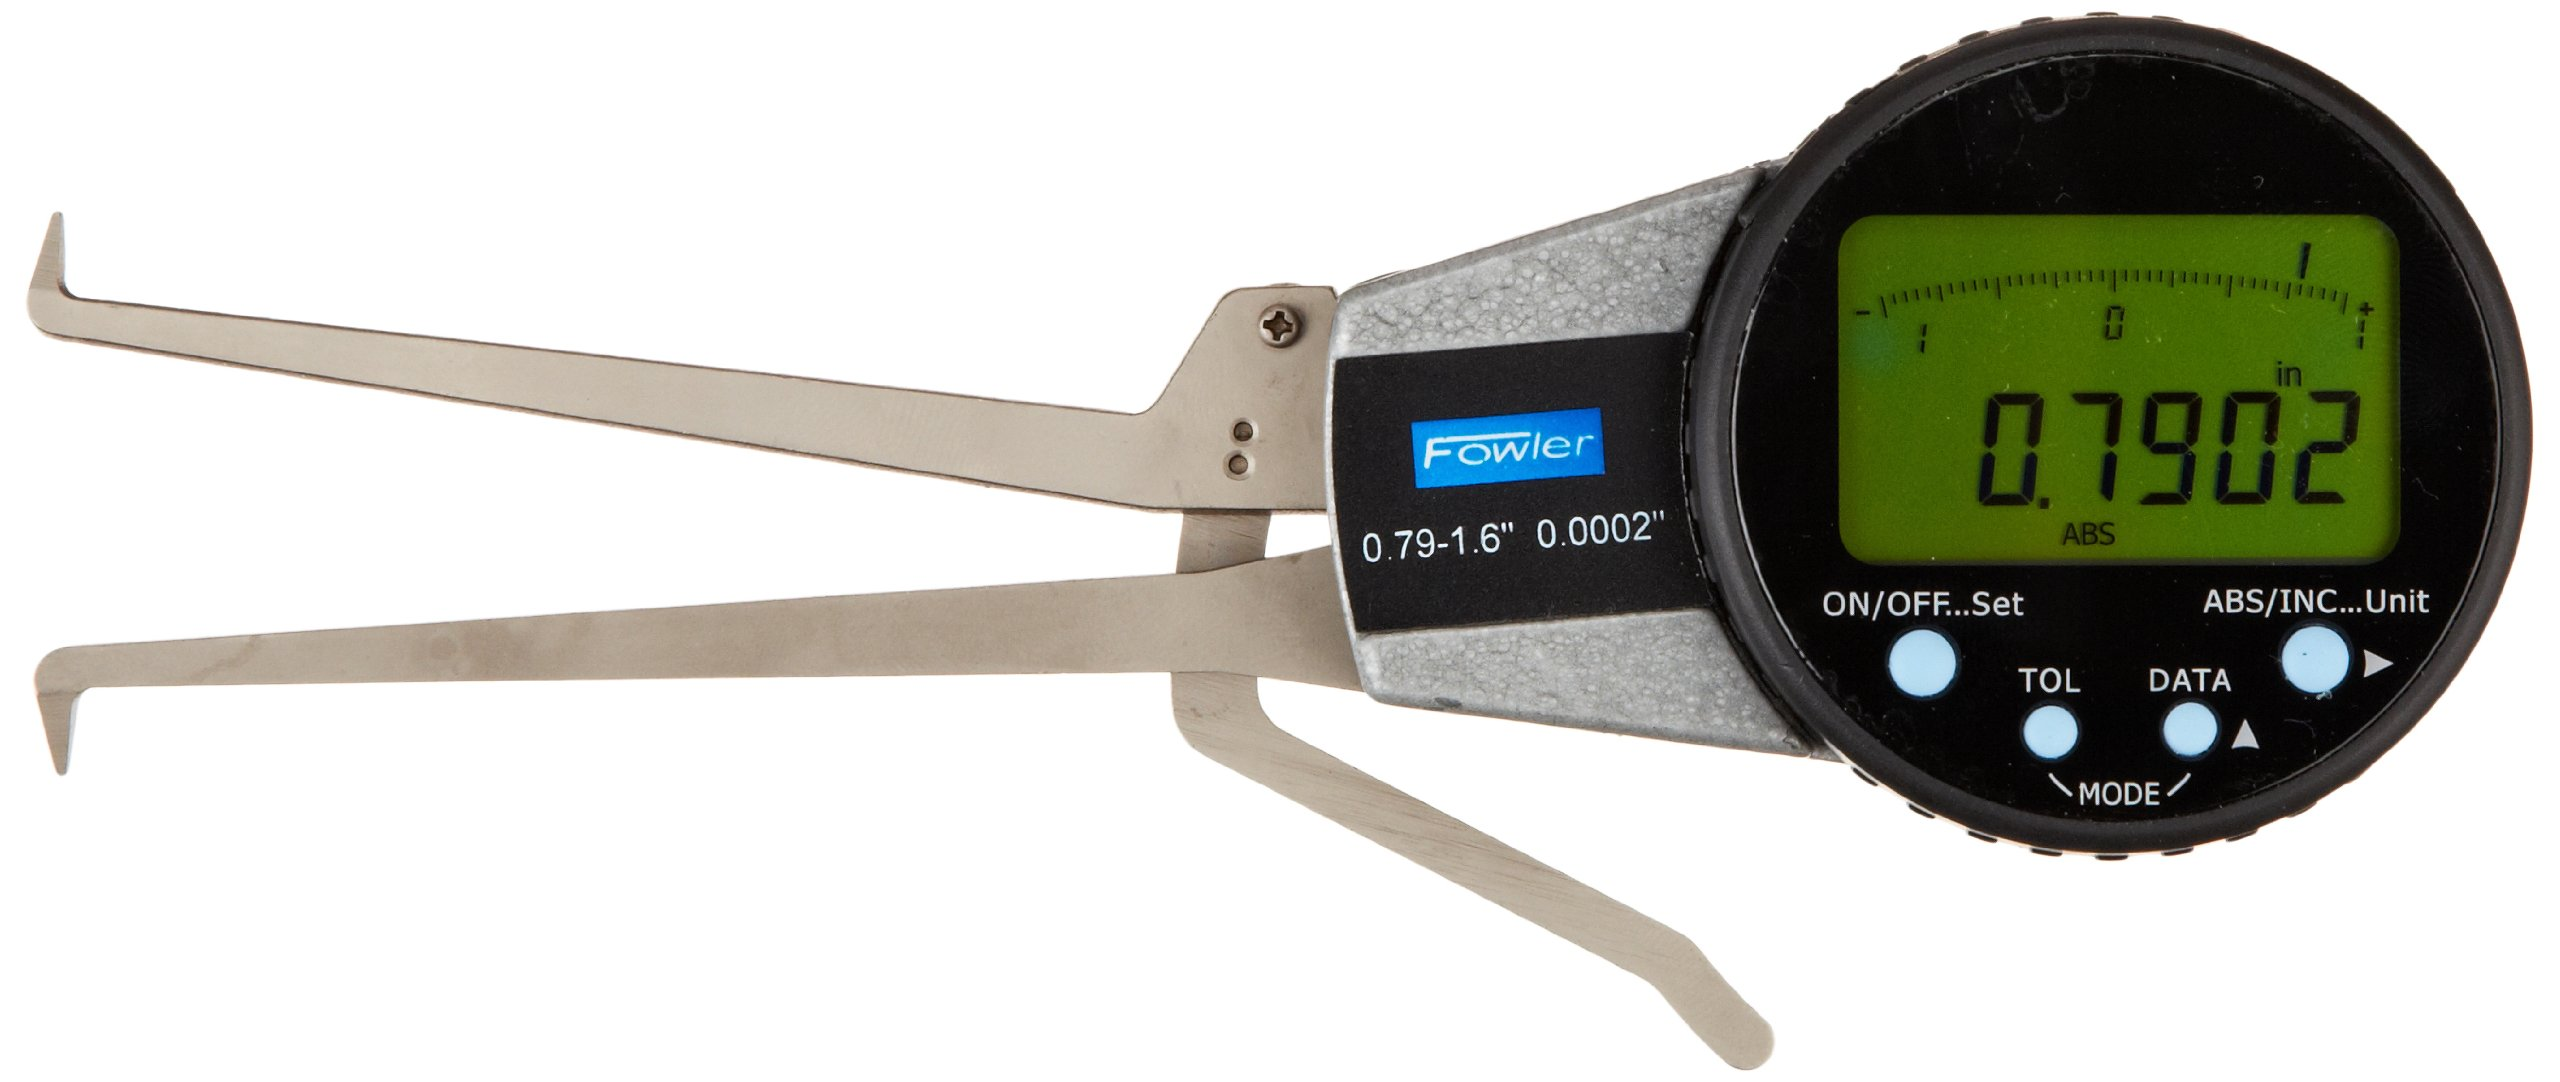 Fowler 54-554-624 Internal Electronic Caliper Gage, 0.790-1.6'' Measuring Range, 0.0005'' Resolution, 0.0008'' Accuracy